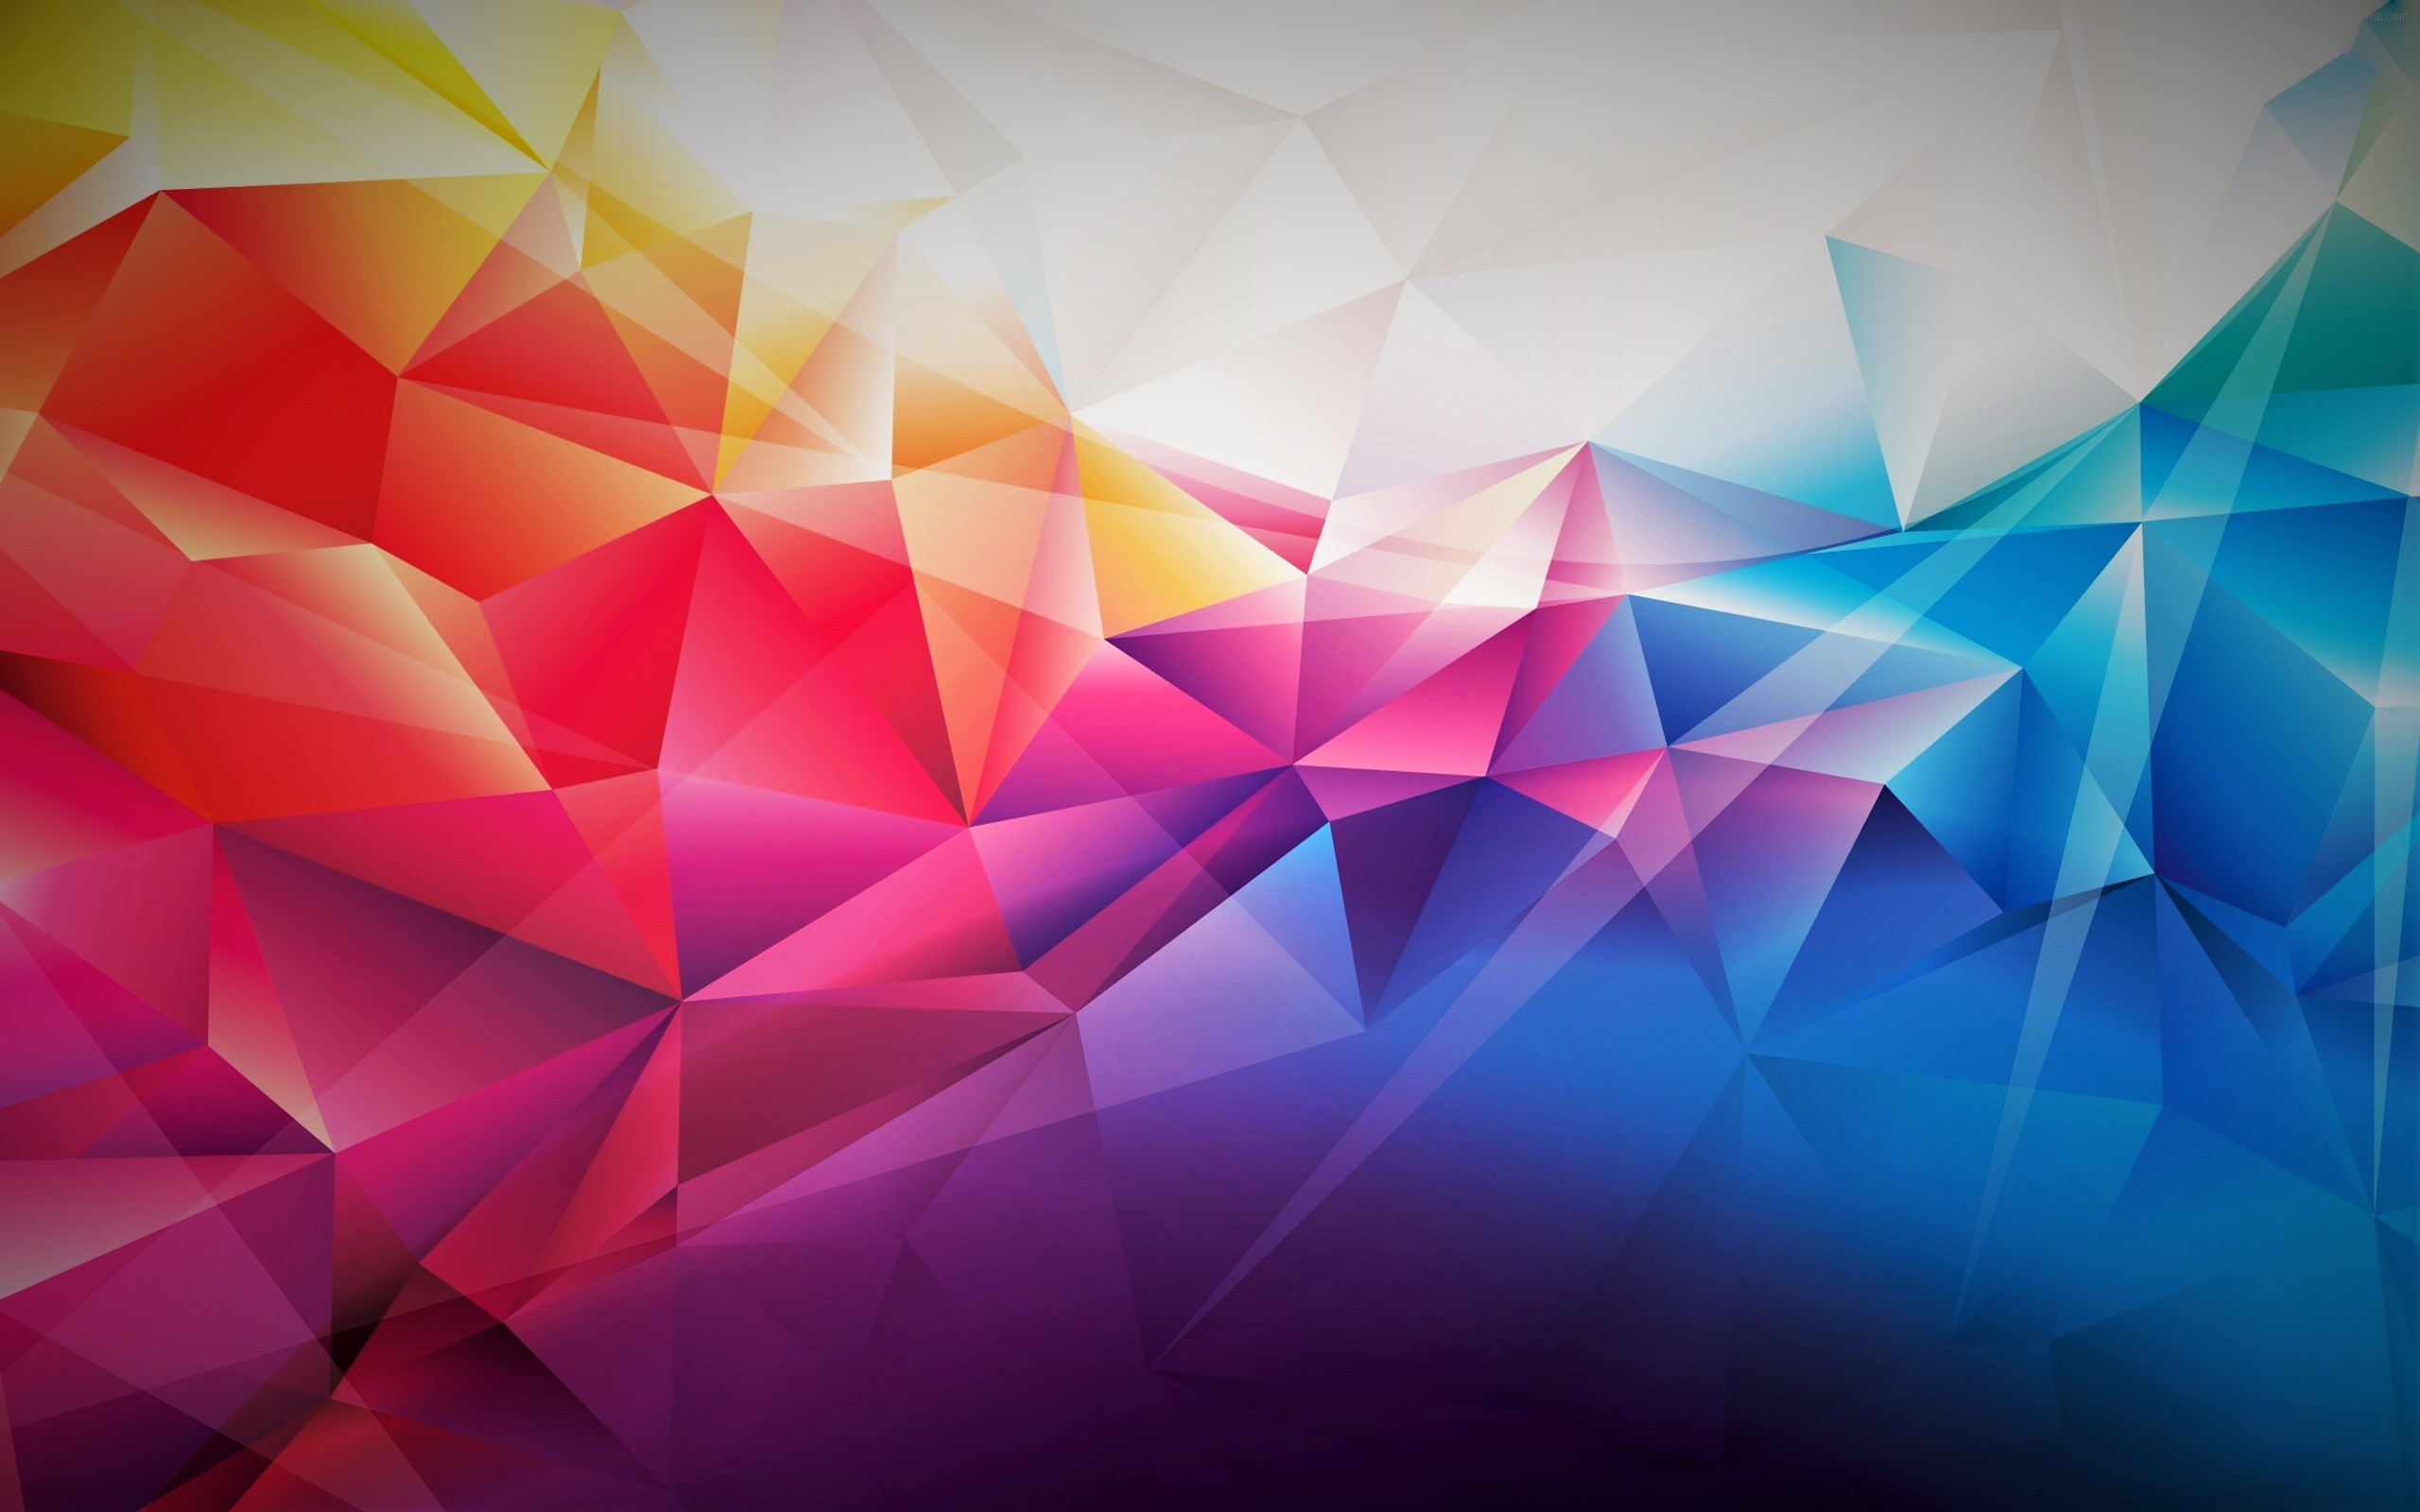 2560x1600 abstract, Blue, Yellow, Red, Pink, Purple, Orange, Colorful Wallpapers HD /  Desktop and Mobile Backgrounds